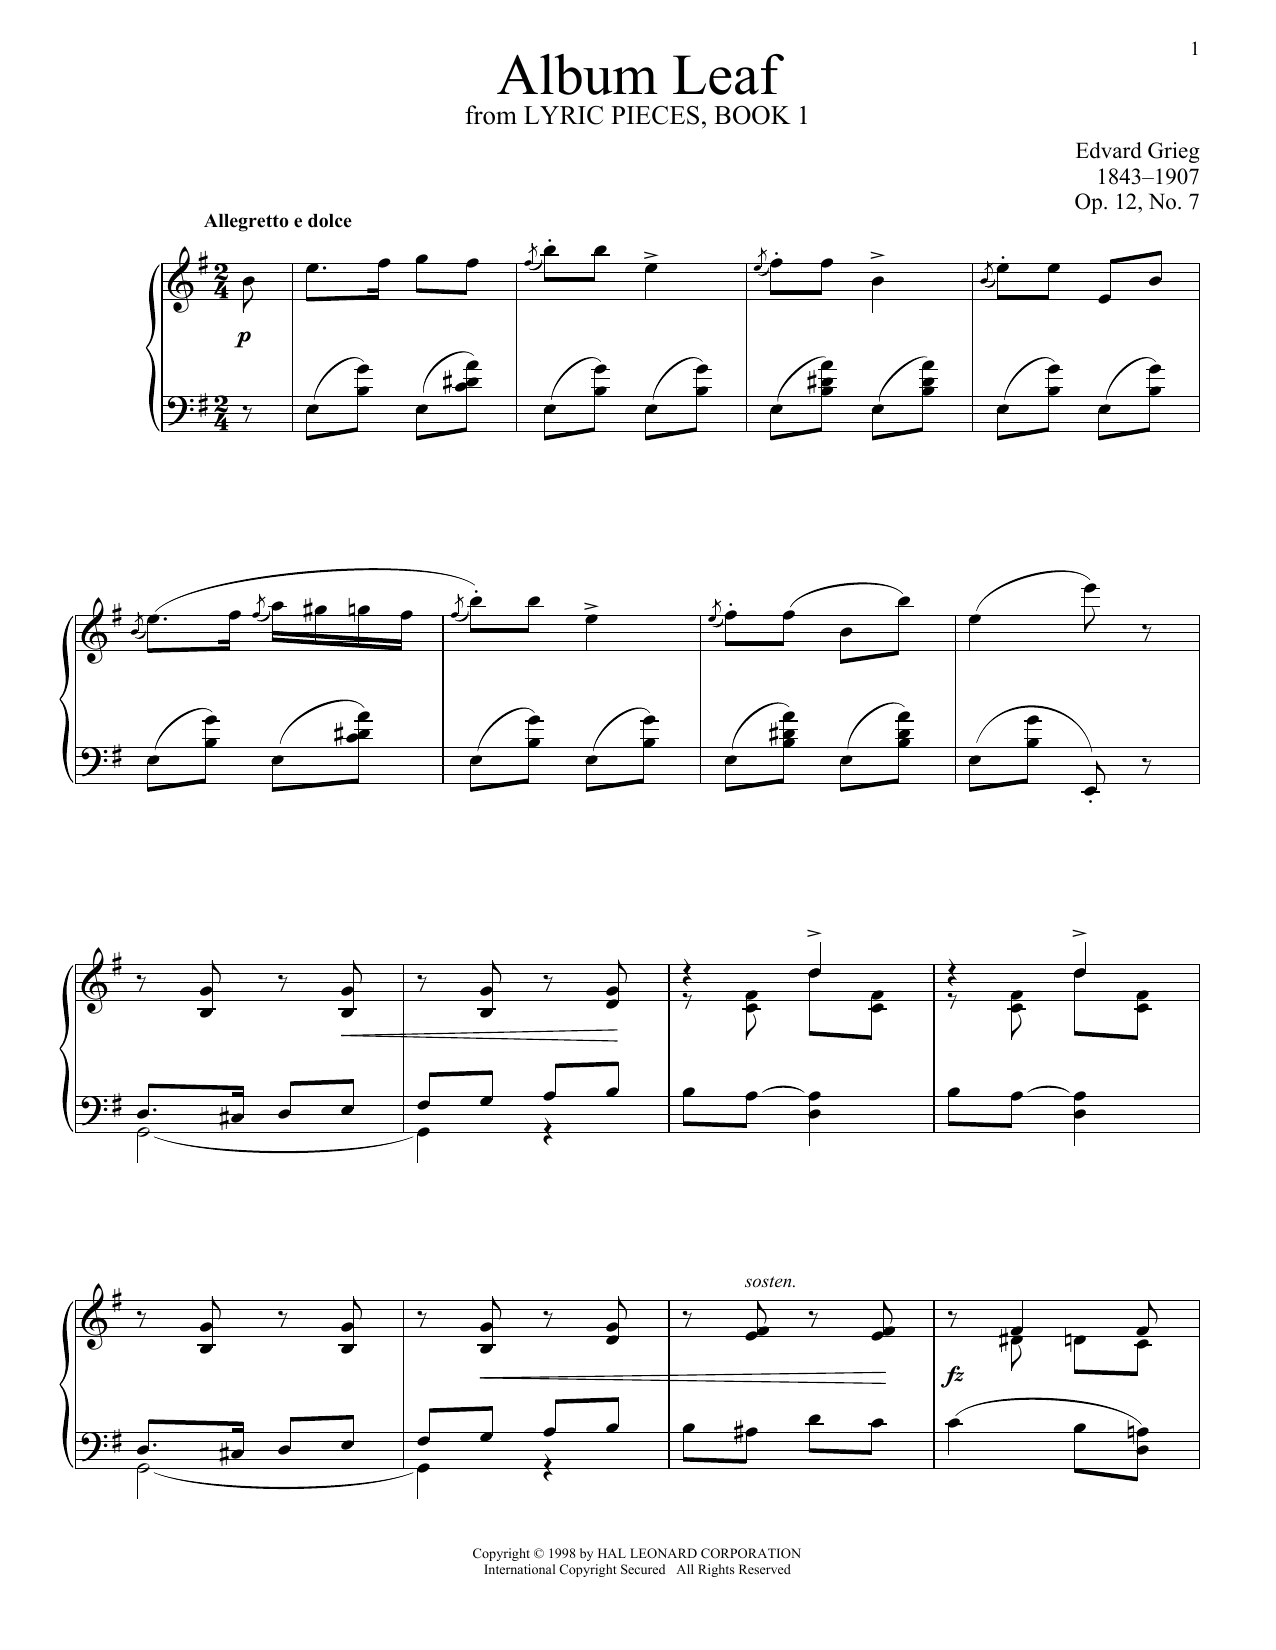 Download Edvard Grieg 'Album Leaf, Op. 12, No. 7' Digital Sheet Music Notes & Chords and start playing in minutes